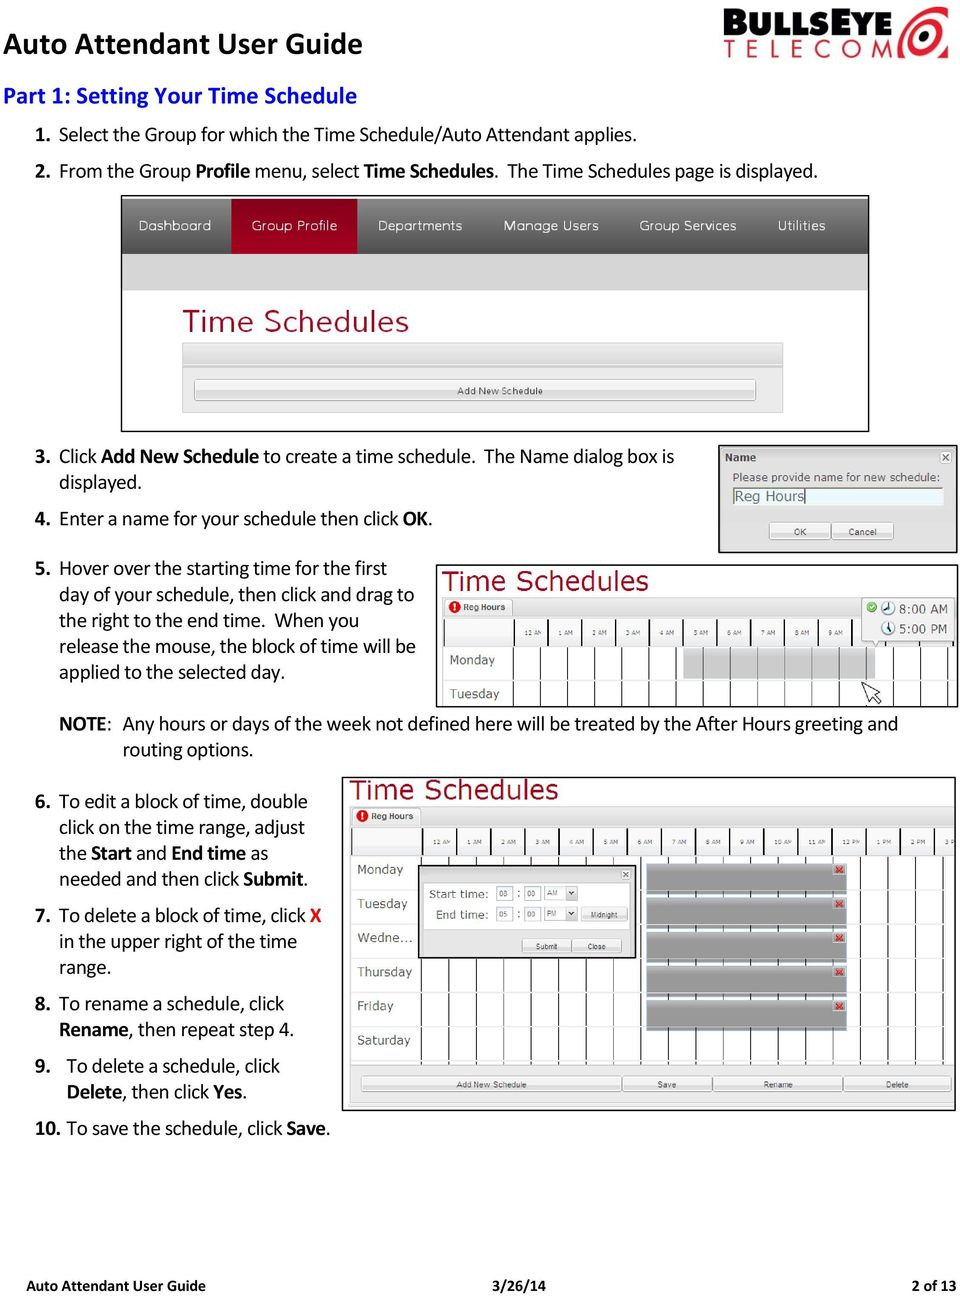 Hover over the starting time for the first day of your schedule, then click and drag to the right to the end time. When you release the mouse, the block of time will be applied to the selected day.